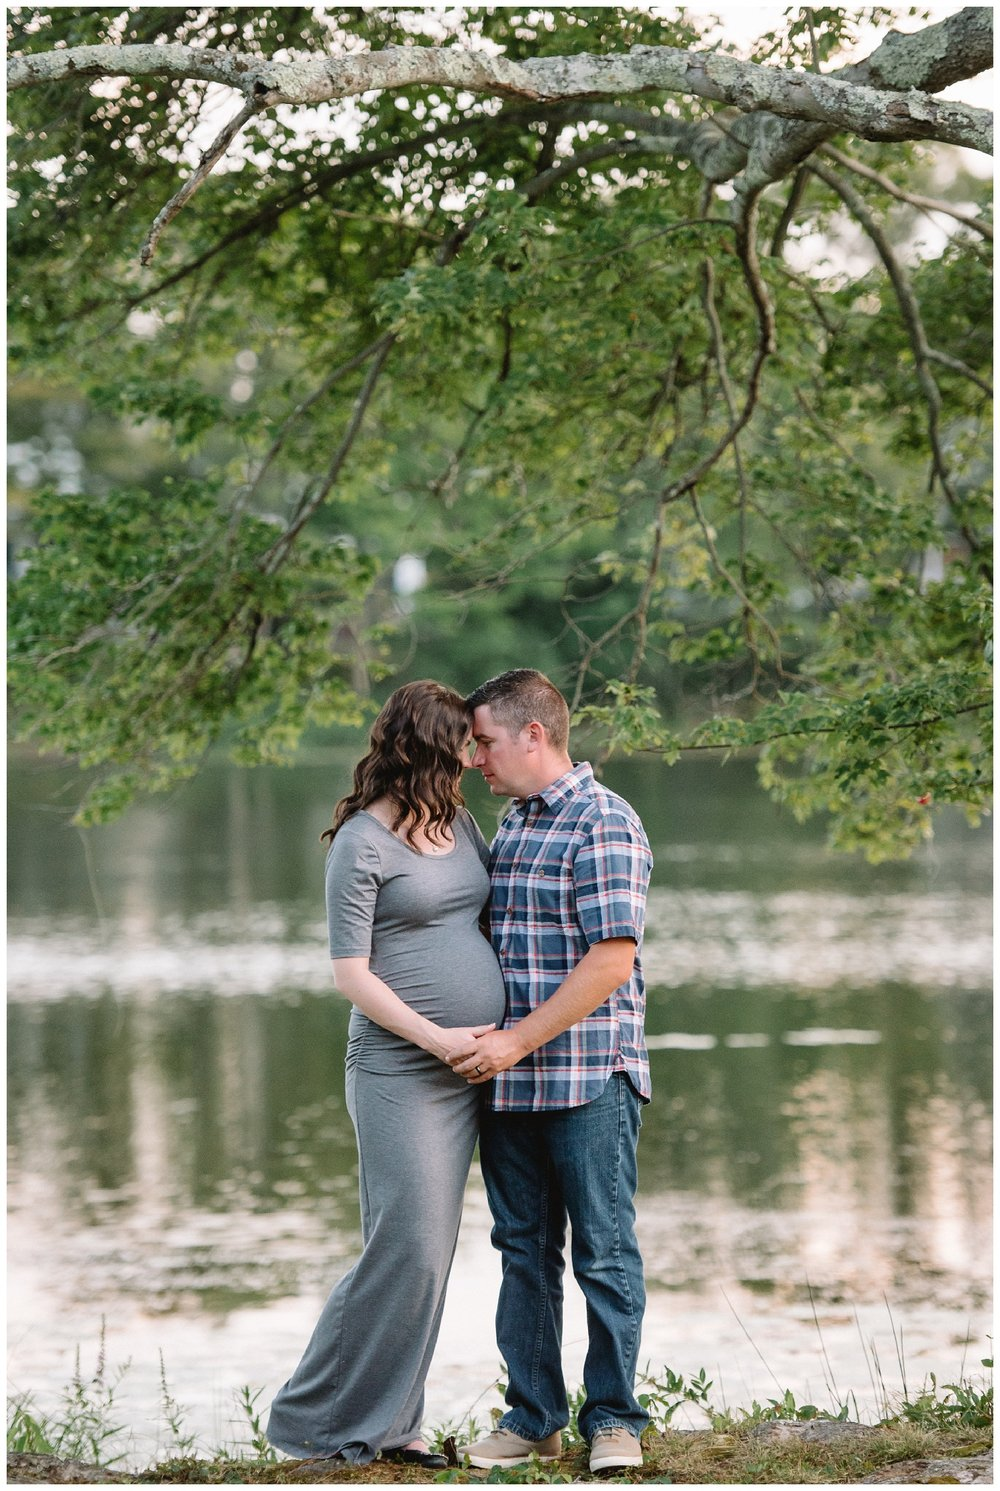 South Shore Maternity Session Cape Cod Maternity Photographer-35.jpg